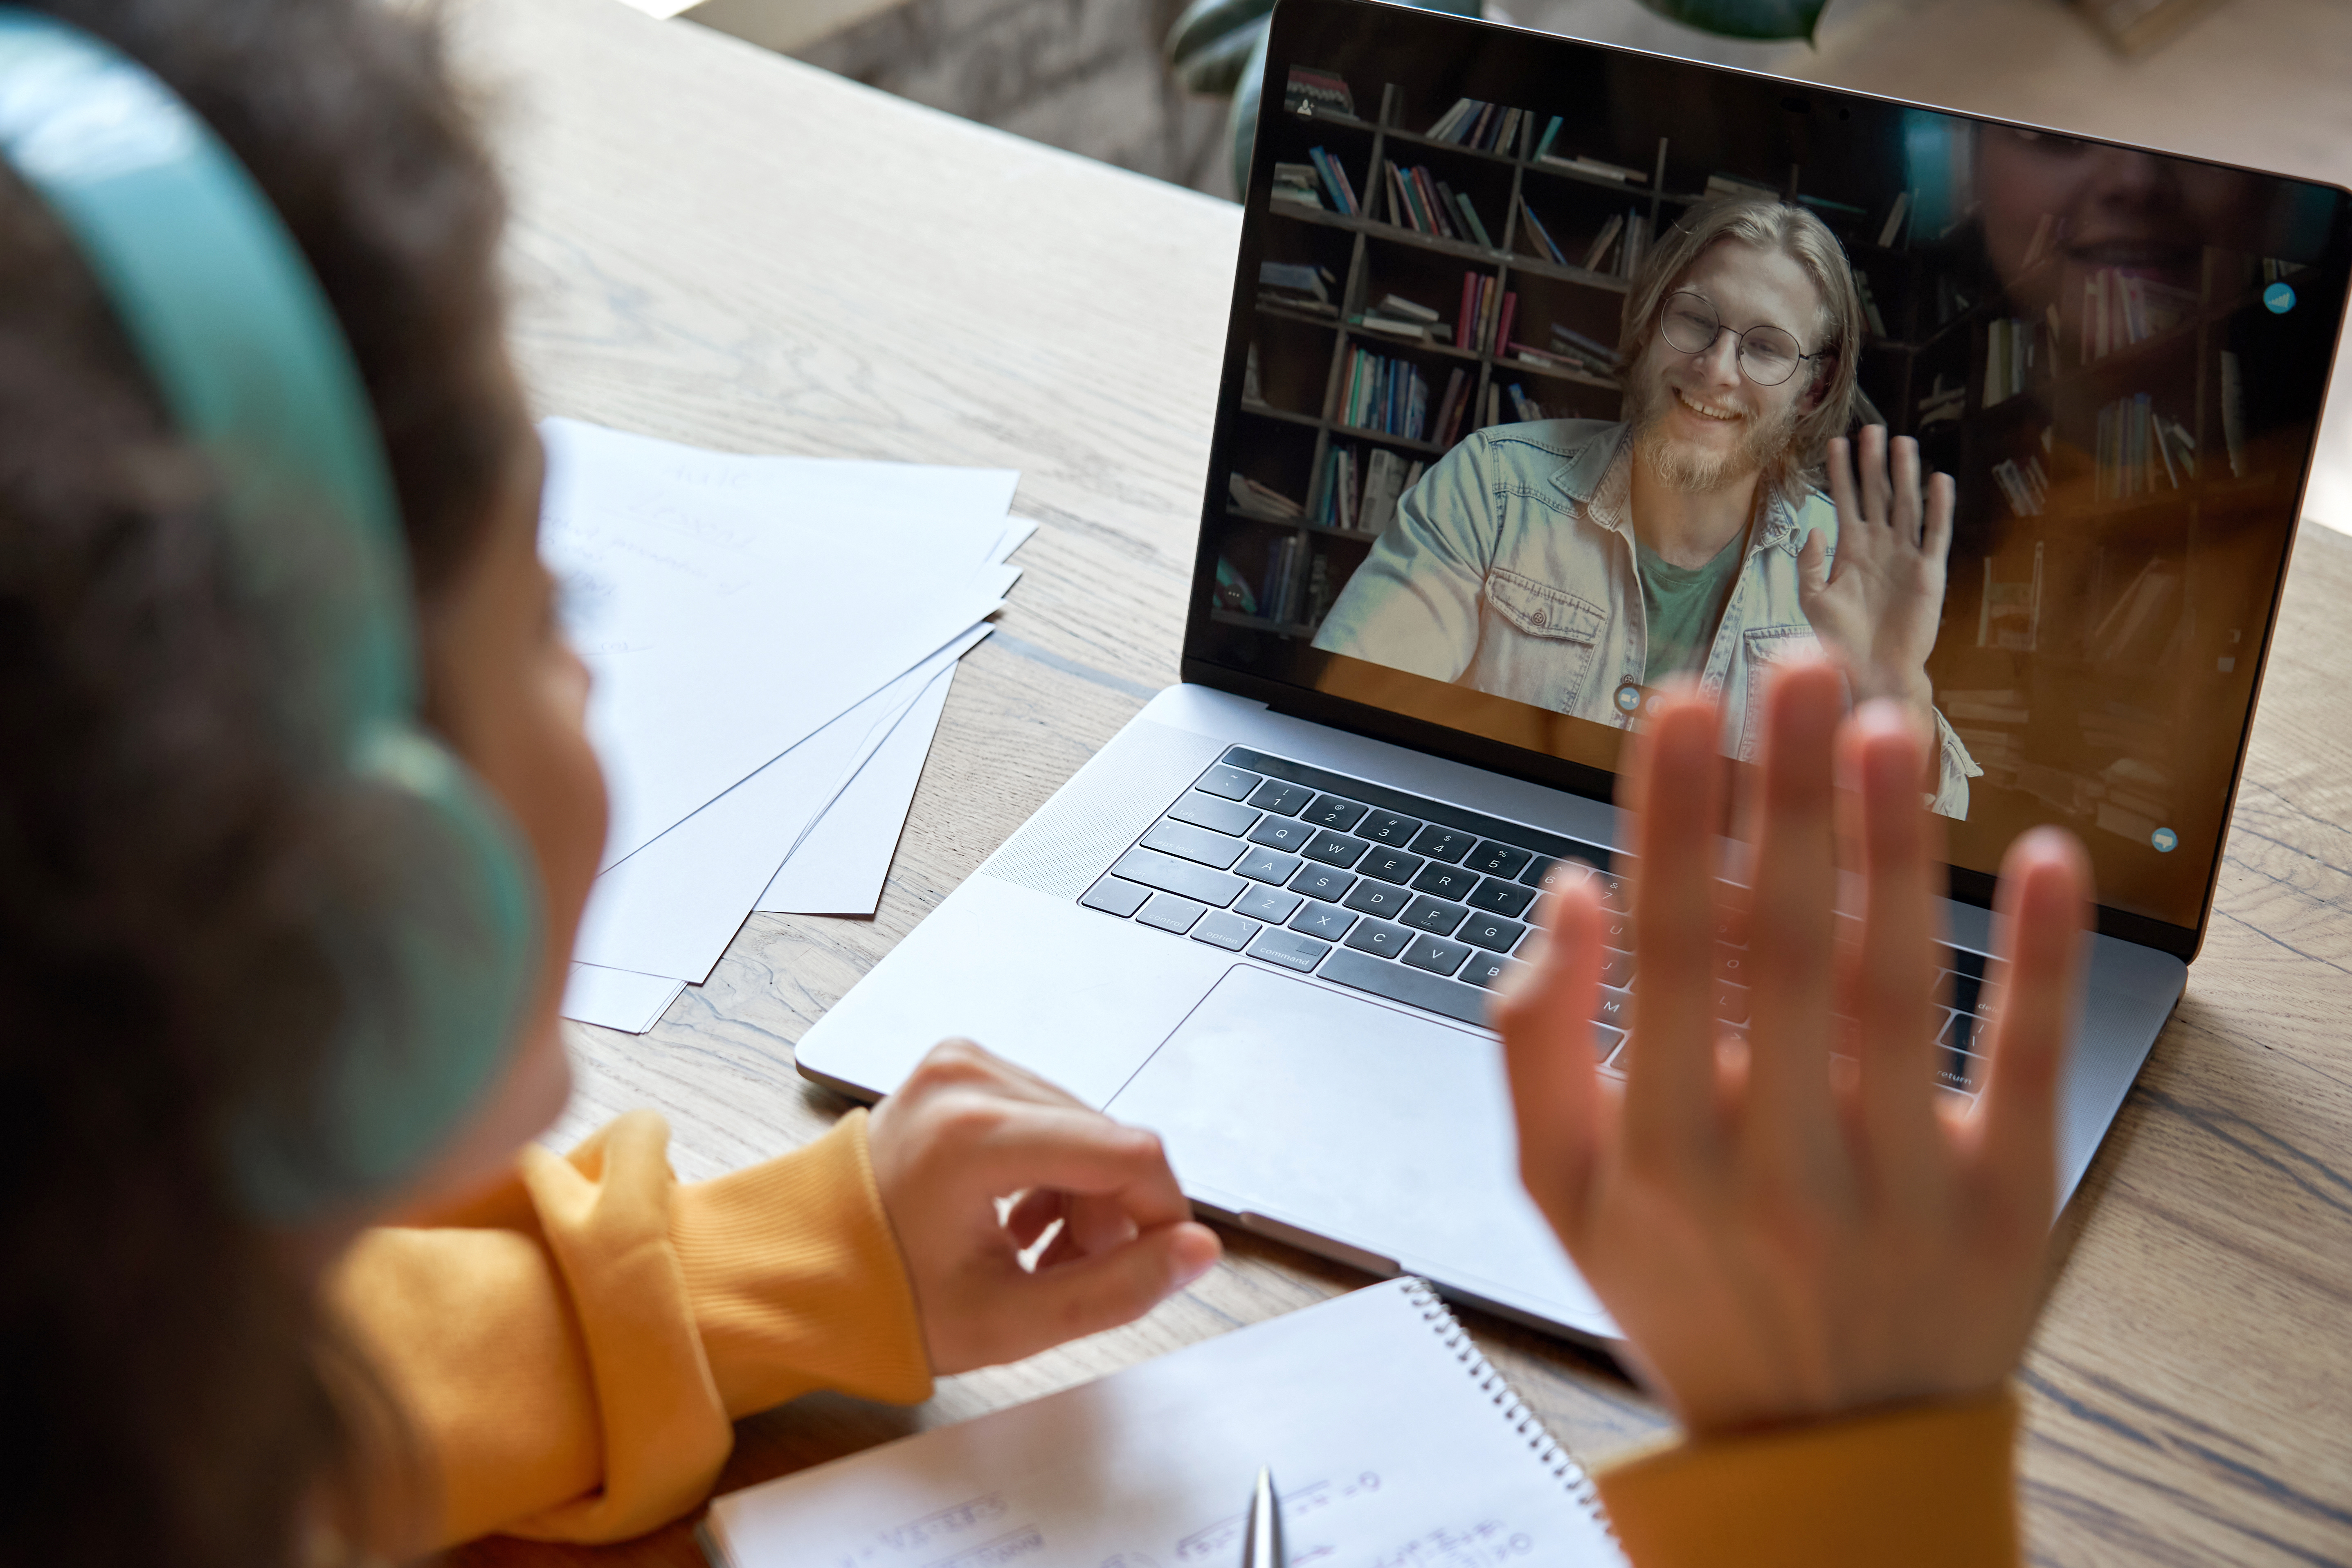 Hispanic teen girl school college student distance learning waving hand studying with online teacher on laptop screen. Elearning zoom video call, videoconference class with tutor. Over shoulder view